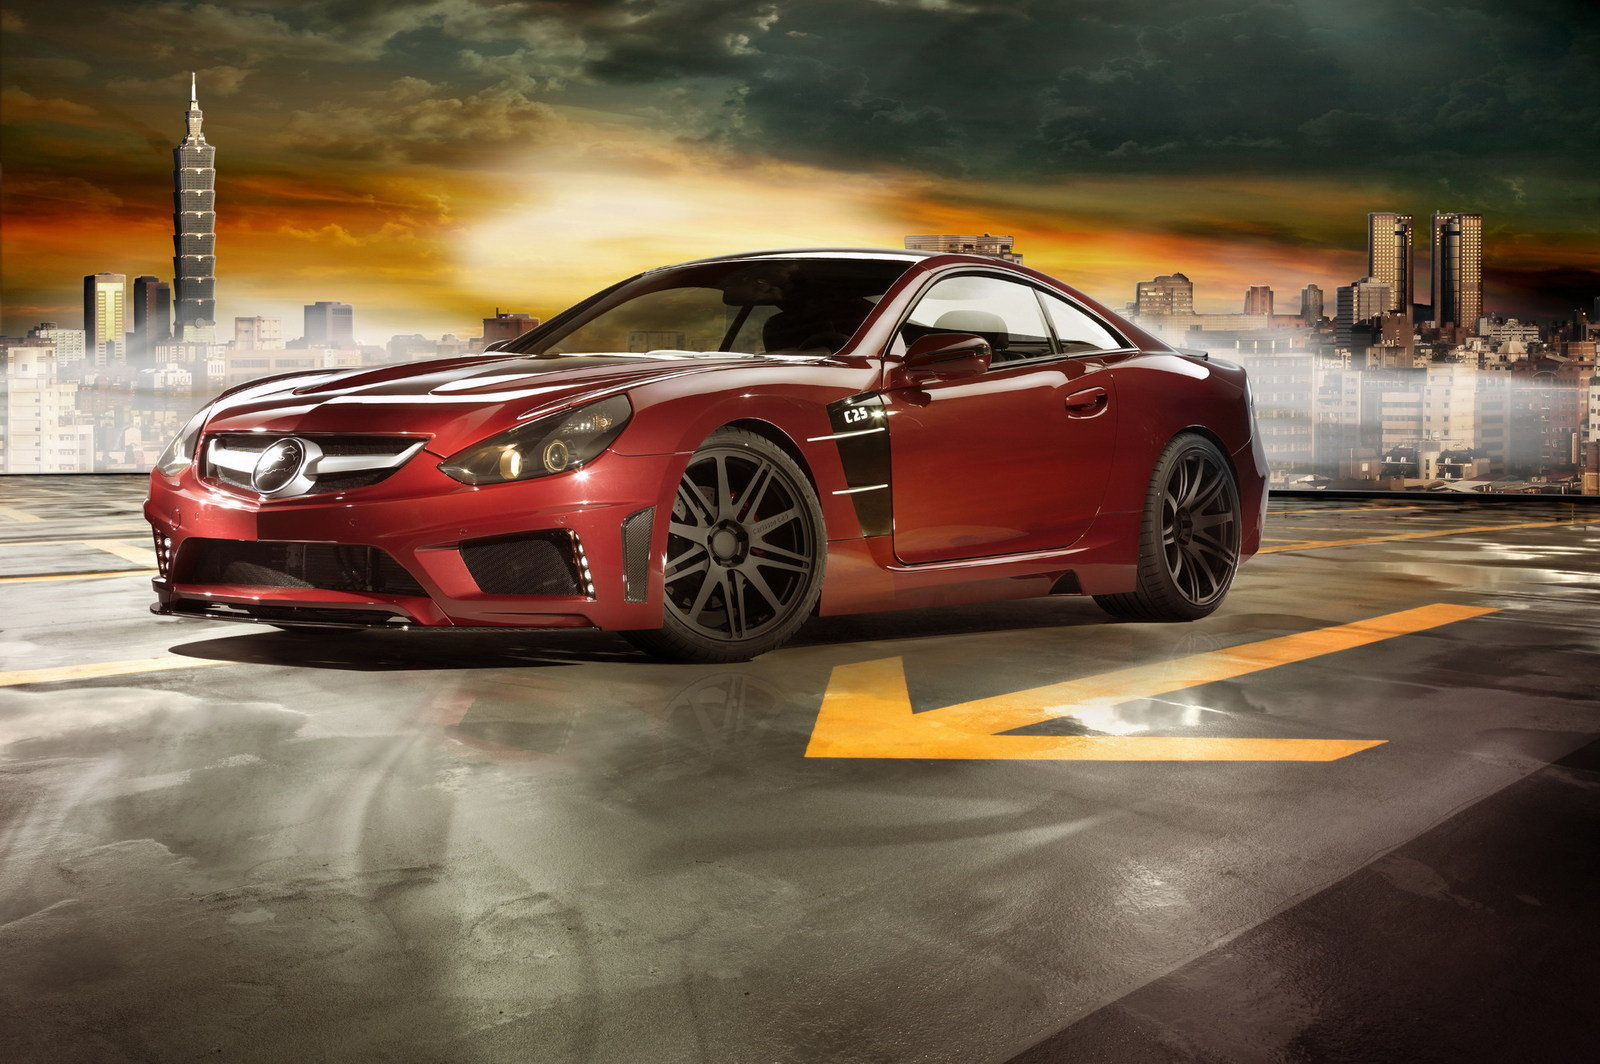 http://pictures.topspeed.com/IMG/crop/201206/carlsson-c25-china-l-2_1600x0w.jpg